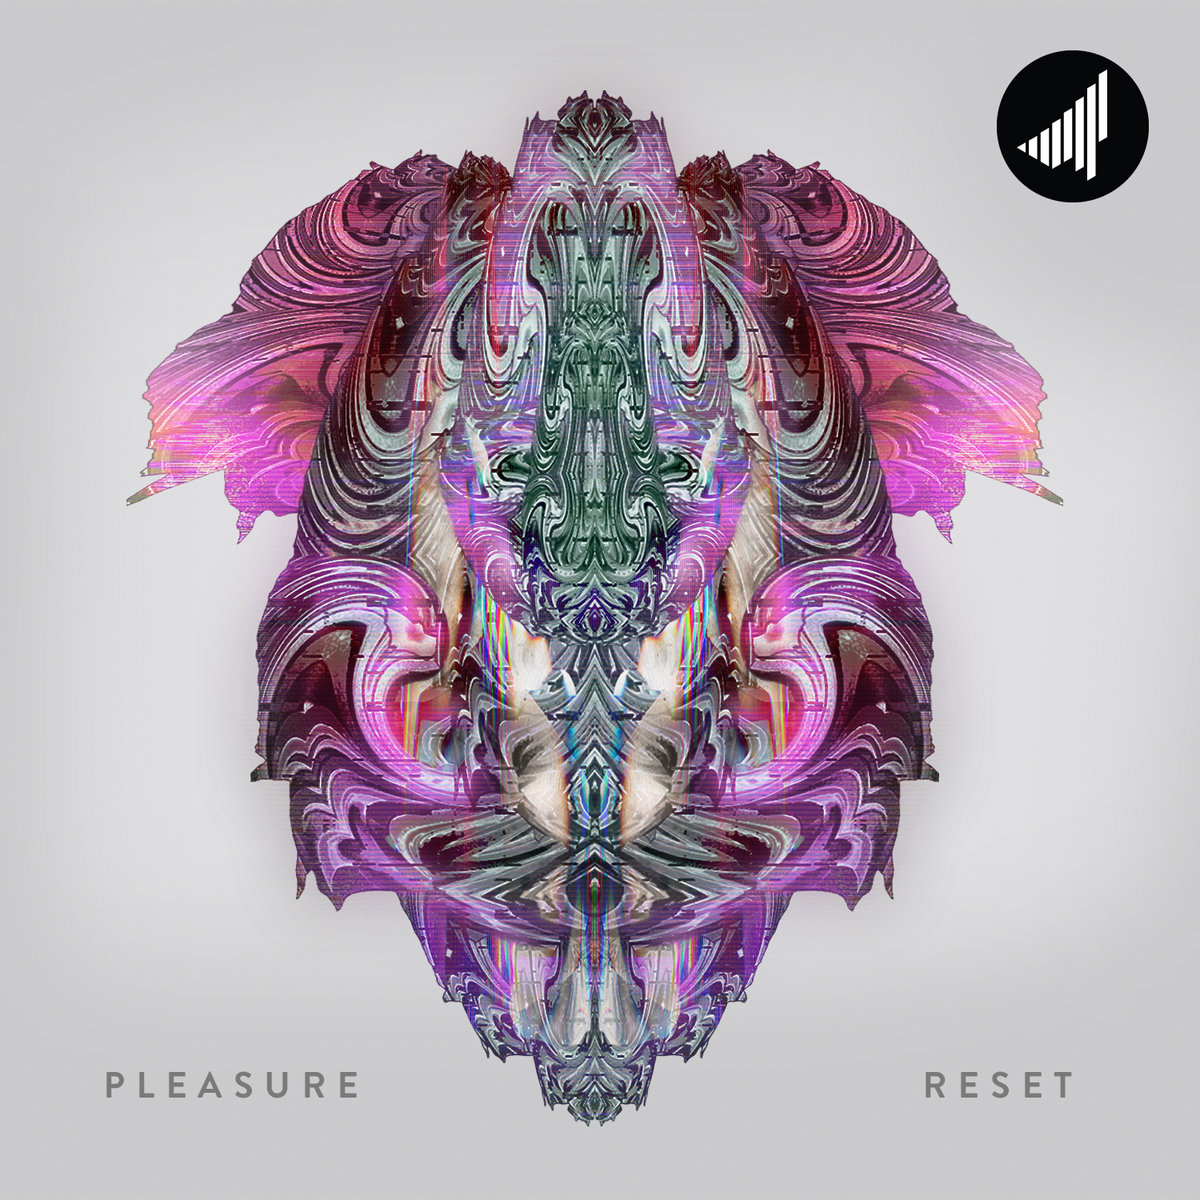 https://saturaterecords.bandcamp.com/album/pleasure-reset-strtep042